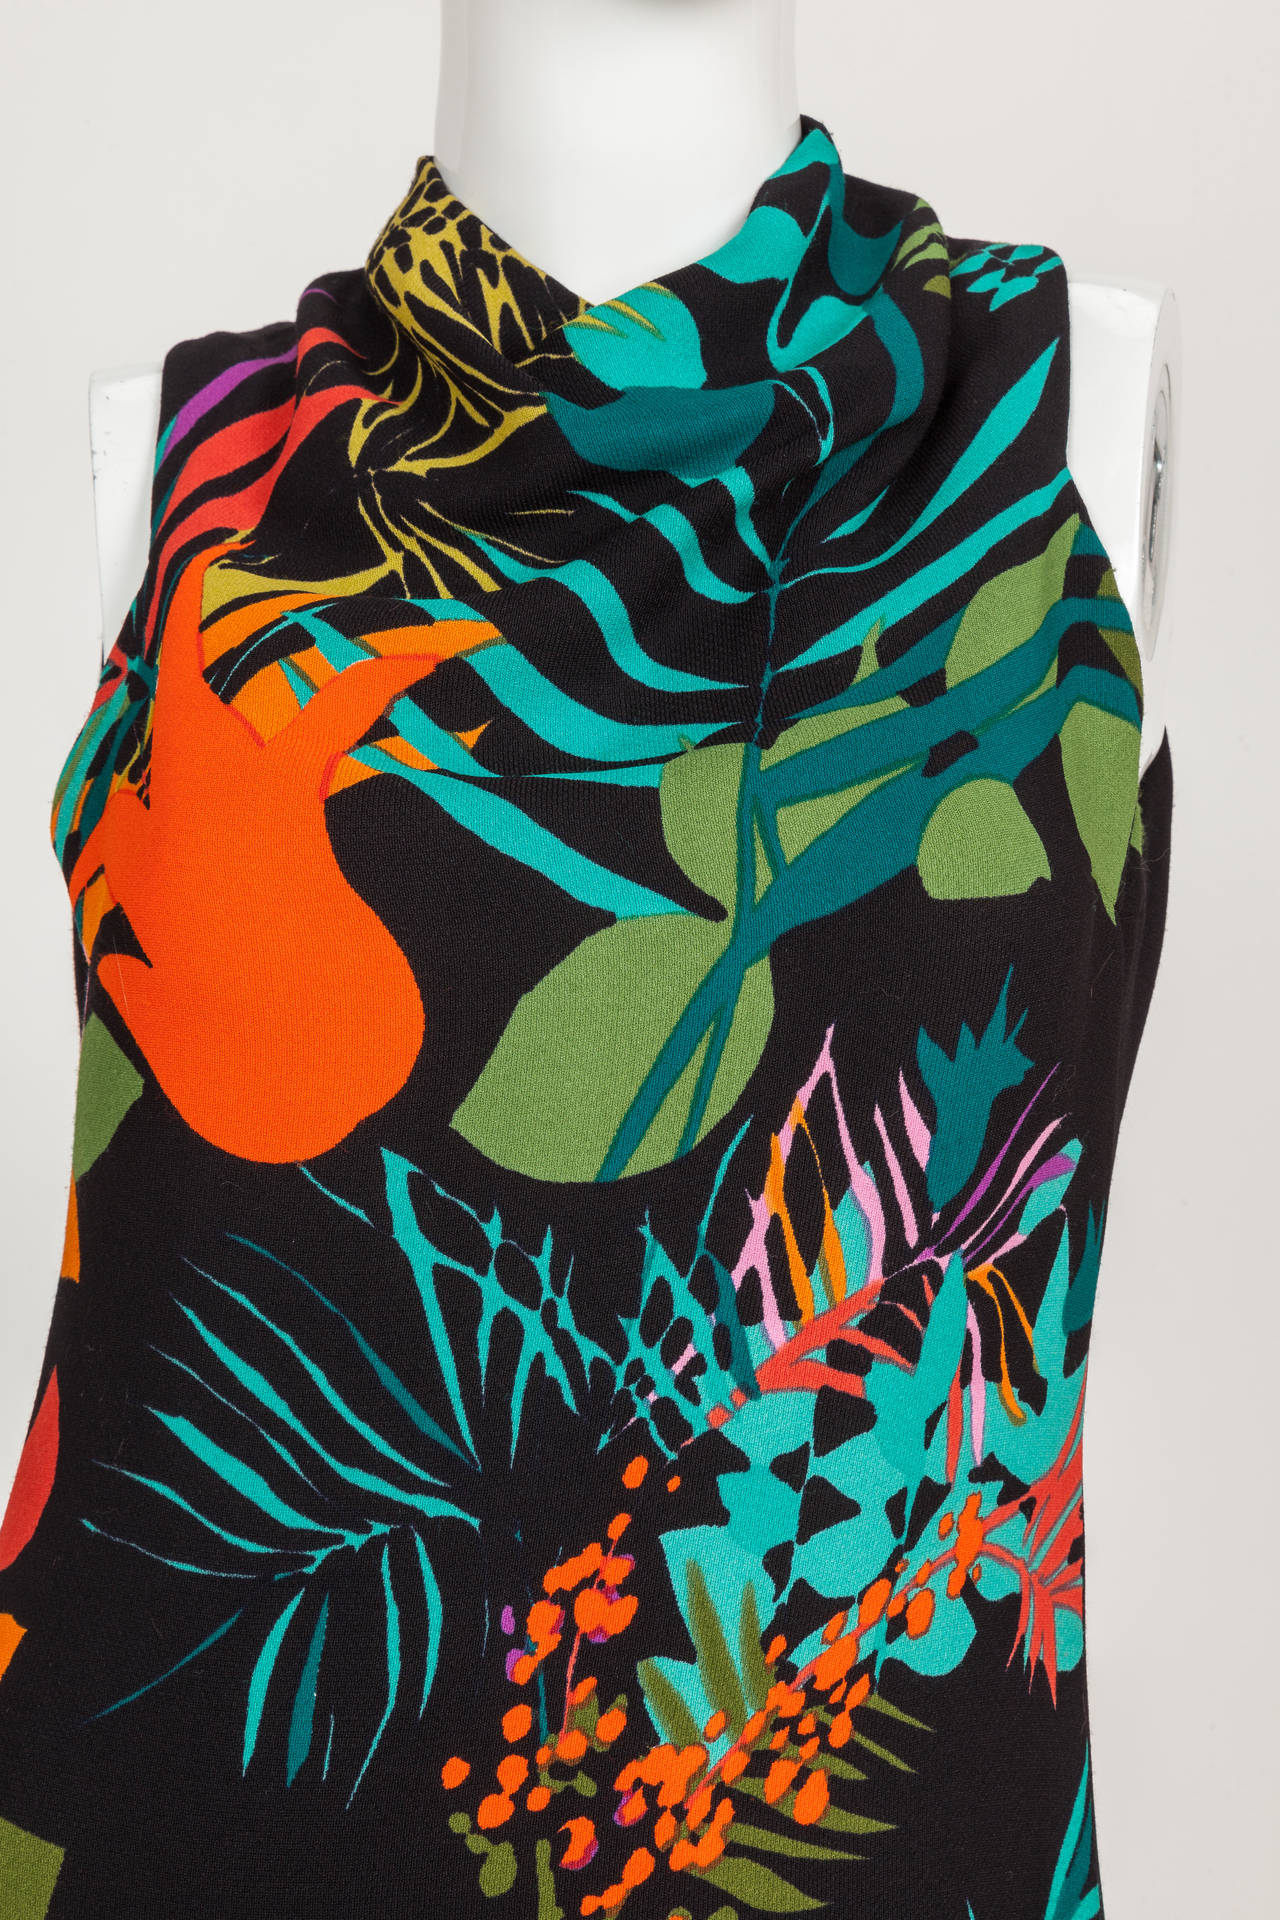 Women's Pauline Trigere Sleeveless Floral Cocktail Day Dress ca. late 1970s/early 1980s For Sale